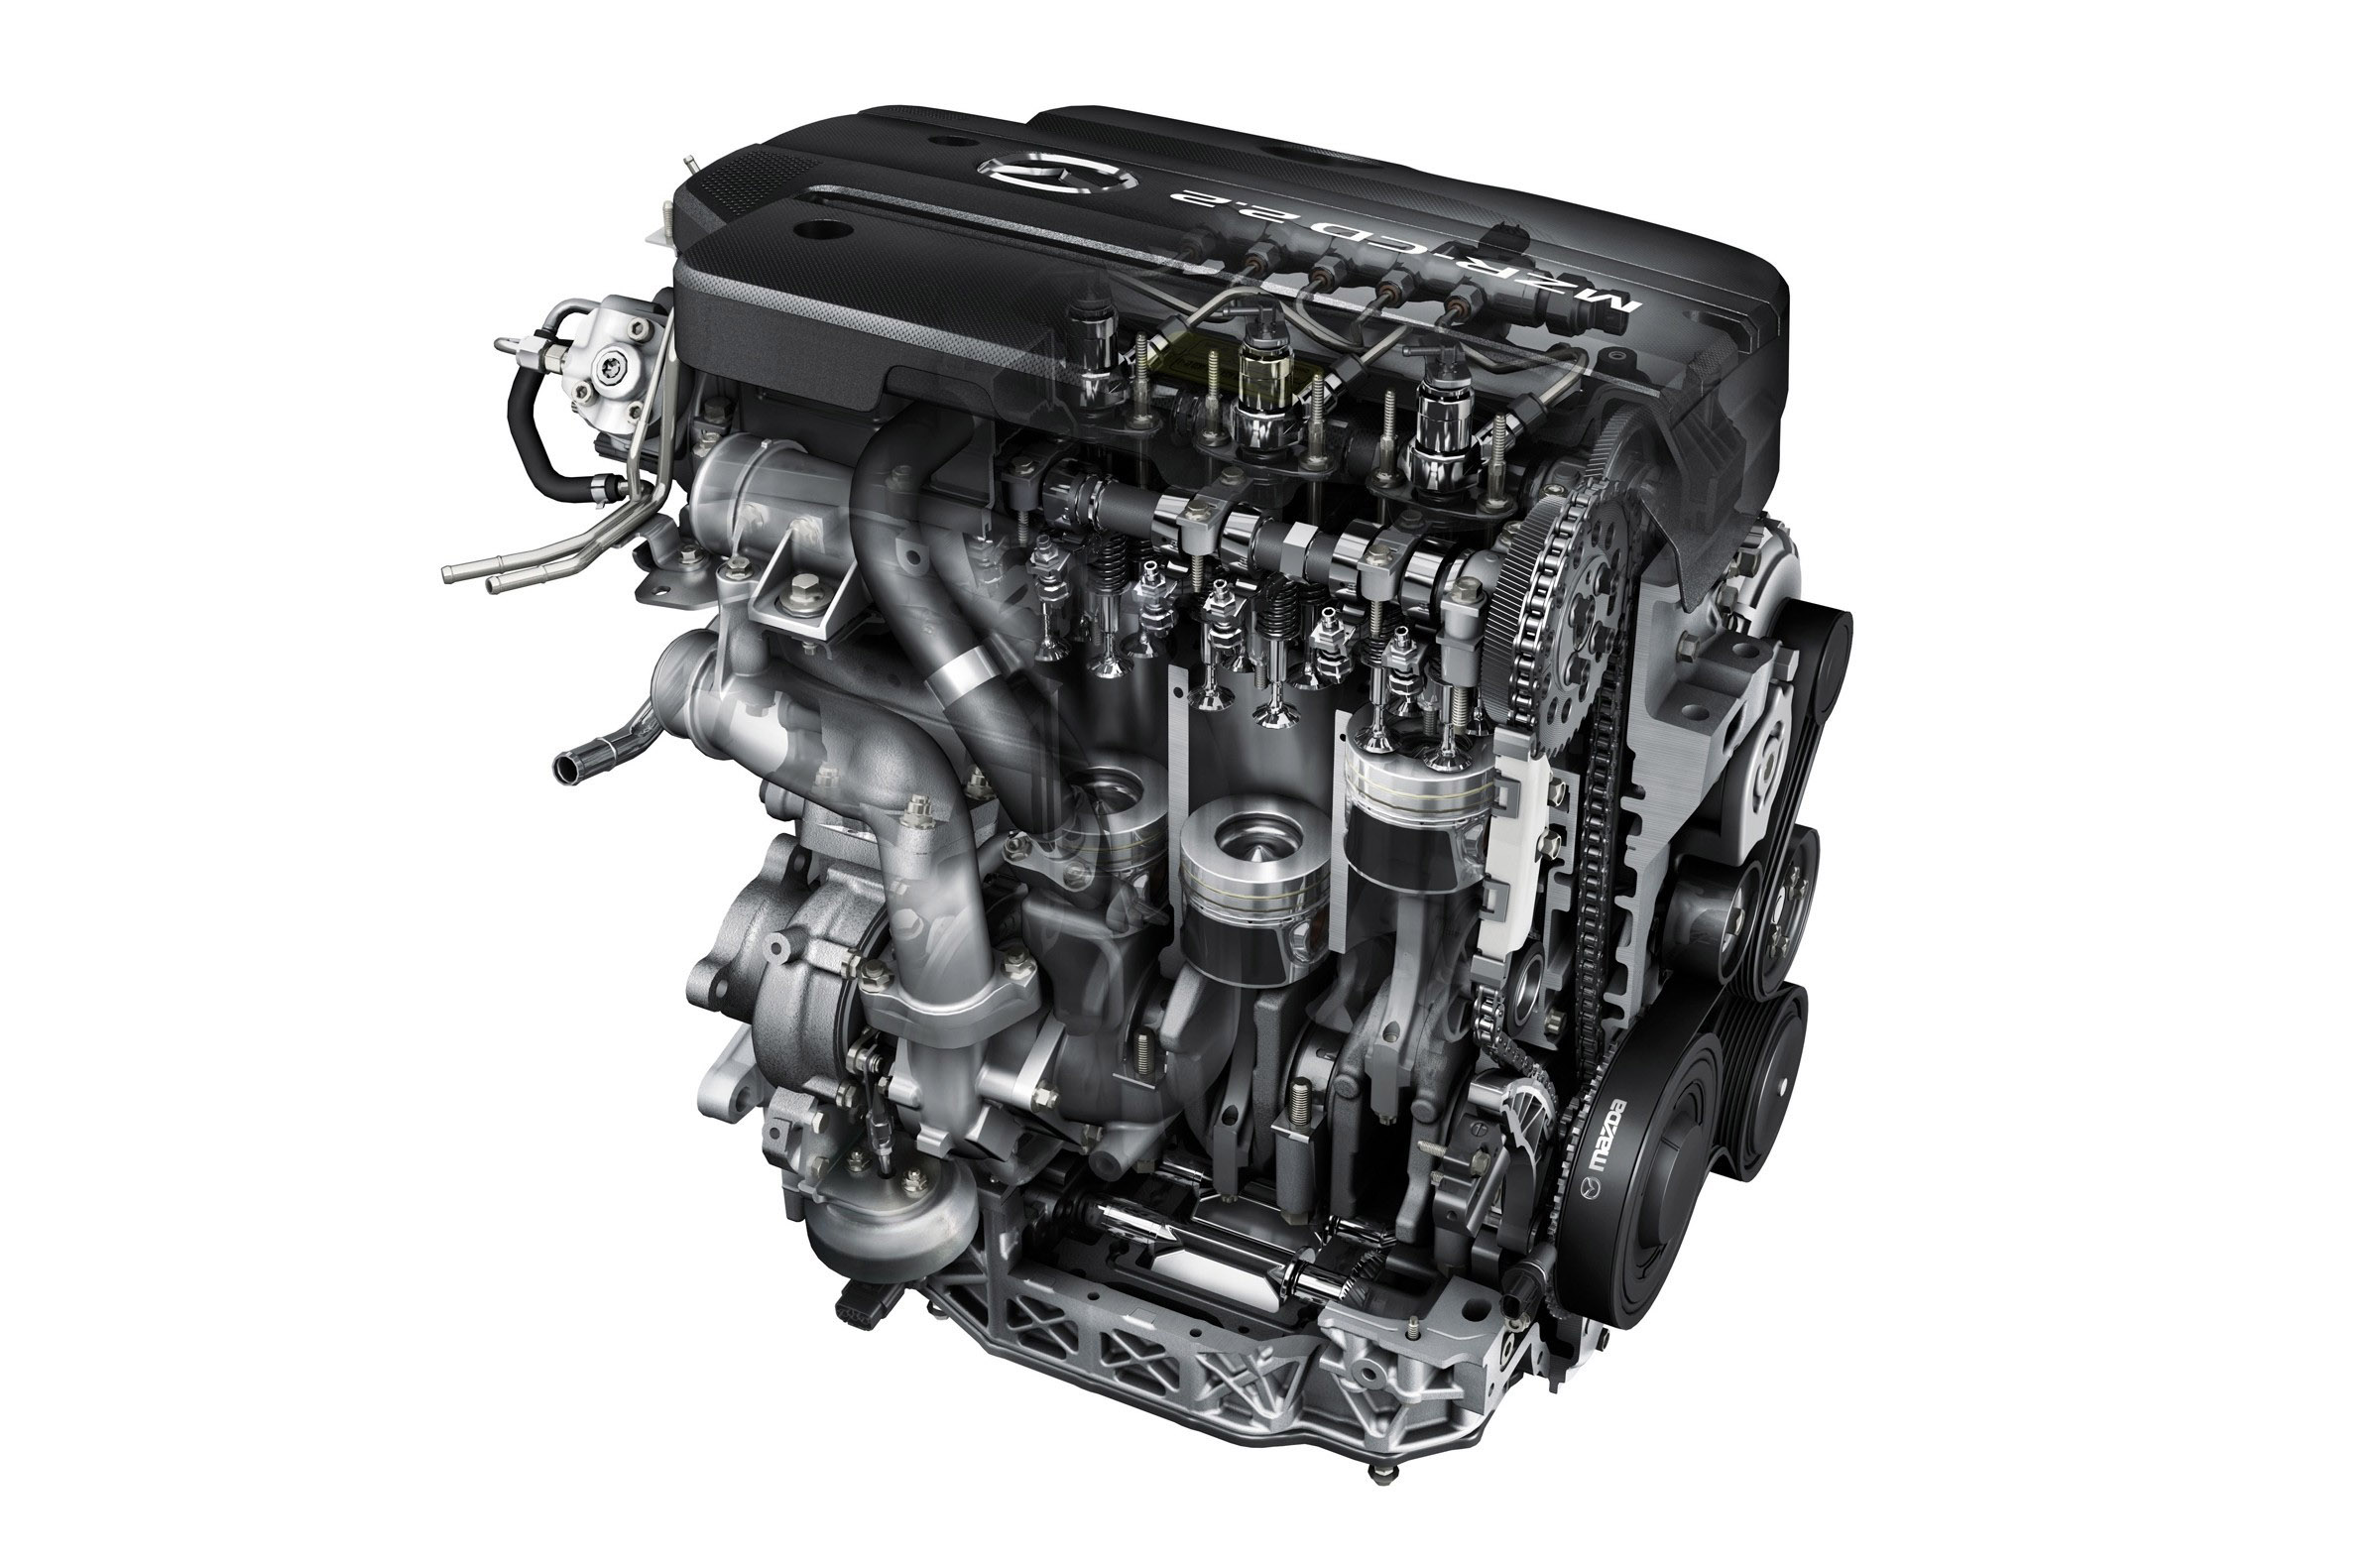 Mazda6 2.2-litre Diesel Engine - Picture 32238